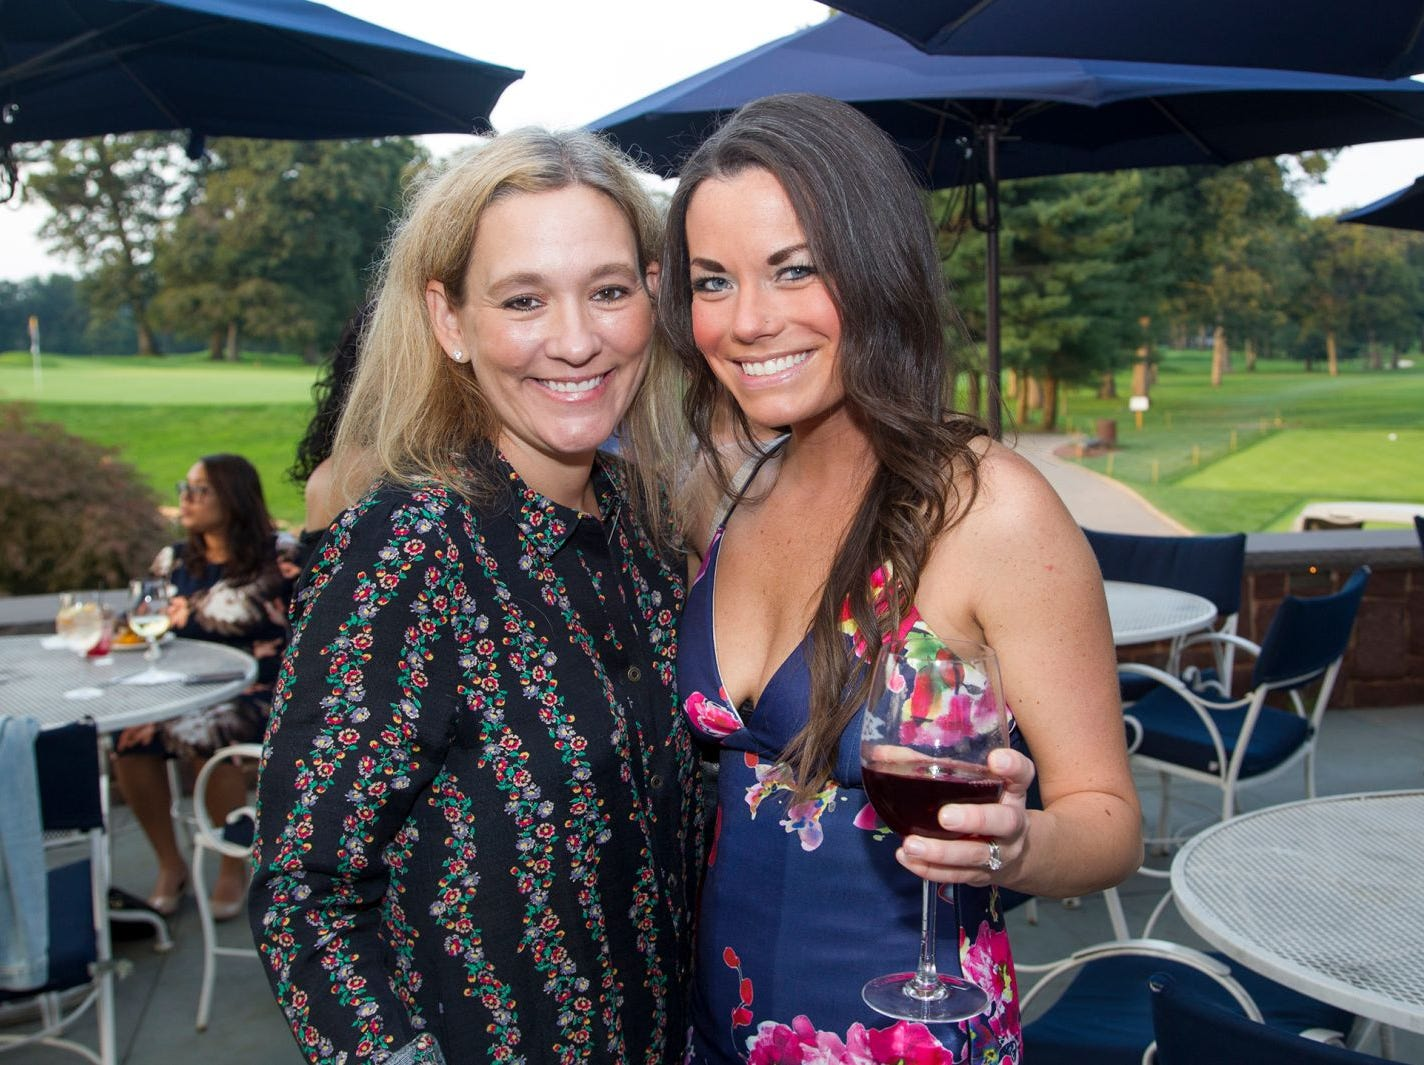 Michaele Kavesh, Kasey McBain. Institute for Educational Achievement held its 23rd annual Golf Classic at Hackensack Golf Club in Oradell. 10/01/2018